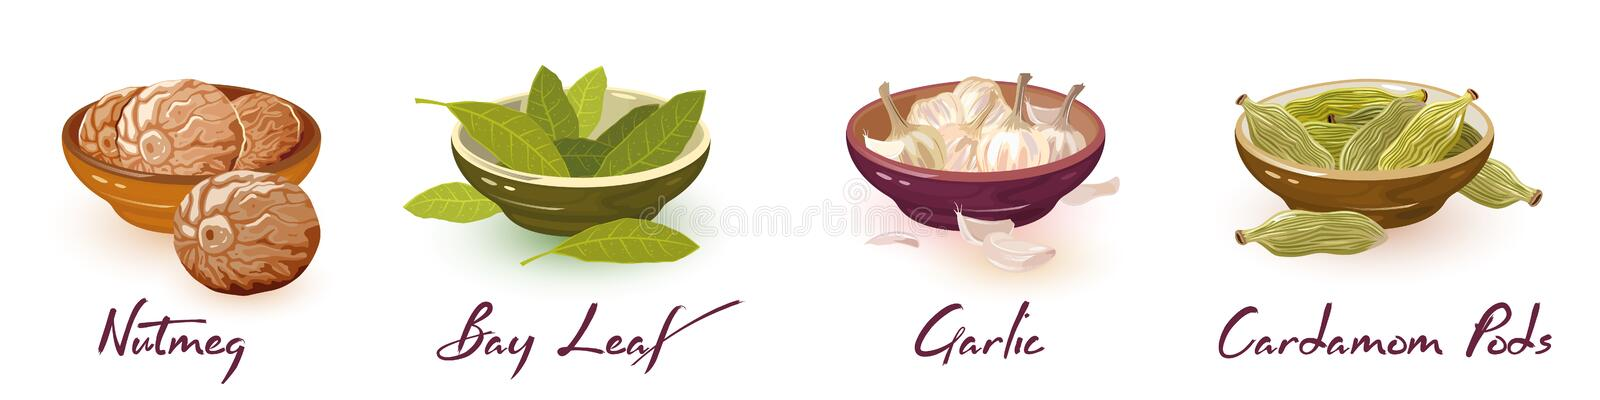 Nutmeg, bay leaves, garlic, cardamom pods. Vector spices assortment set with icons and lettering. Natural products, design elements for packing, recipes royalty free illustration